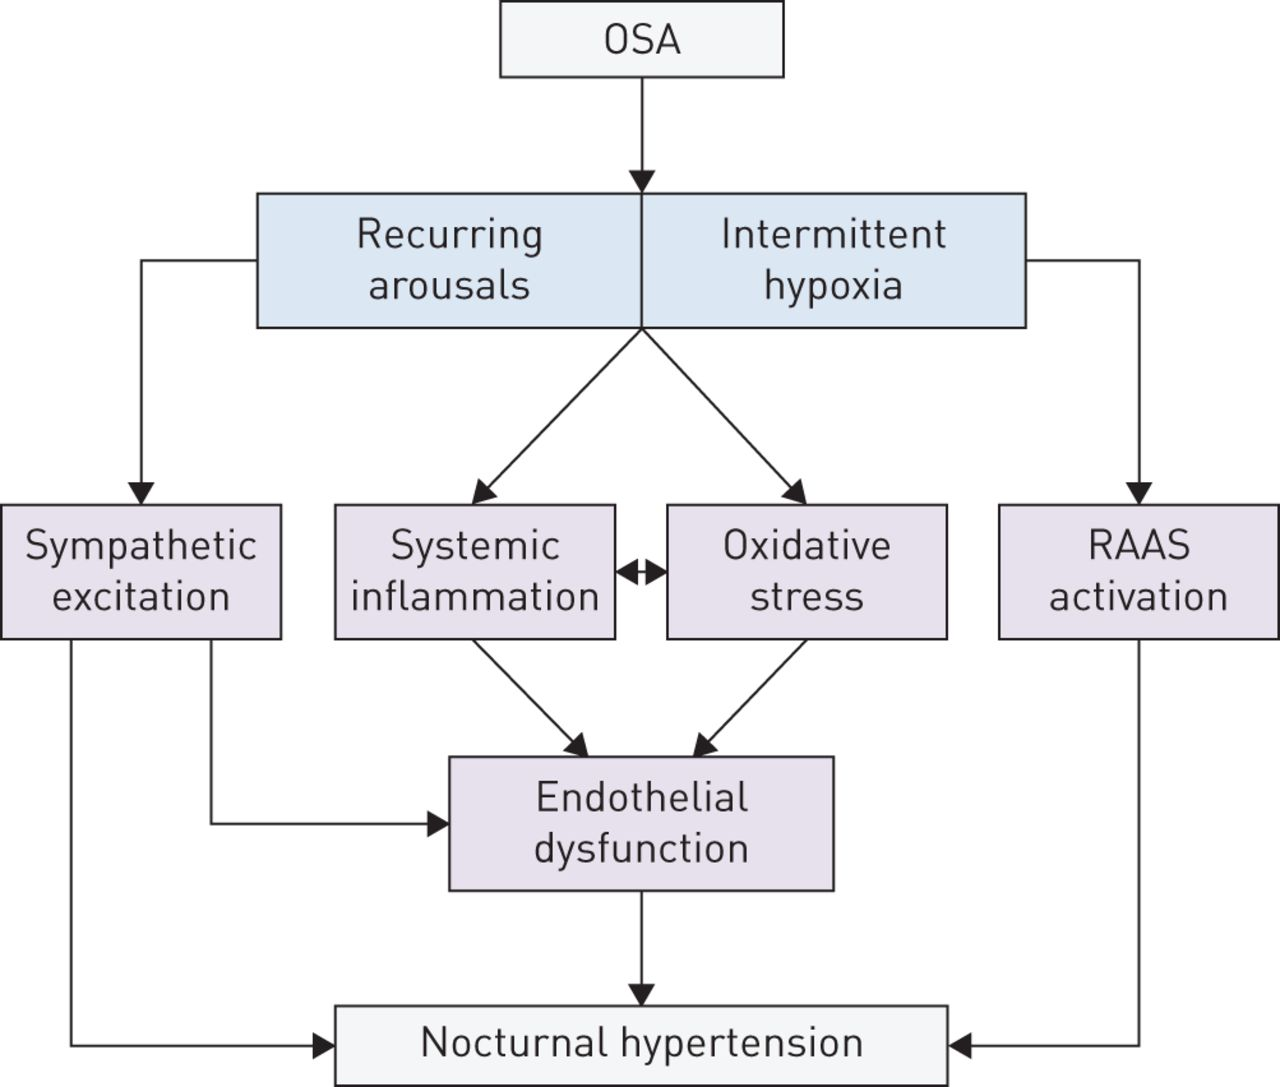 Obstructive sleep apnoea as a cause of nocturnal nondipping blood pressure:  recent evidence regarding clinical importance and underlying mechanisms    European Respiratory Society